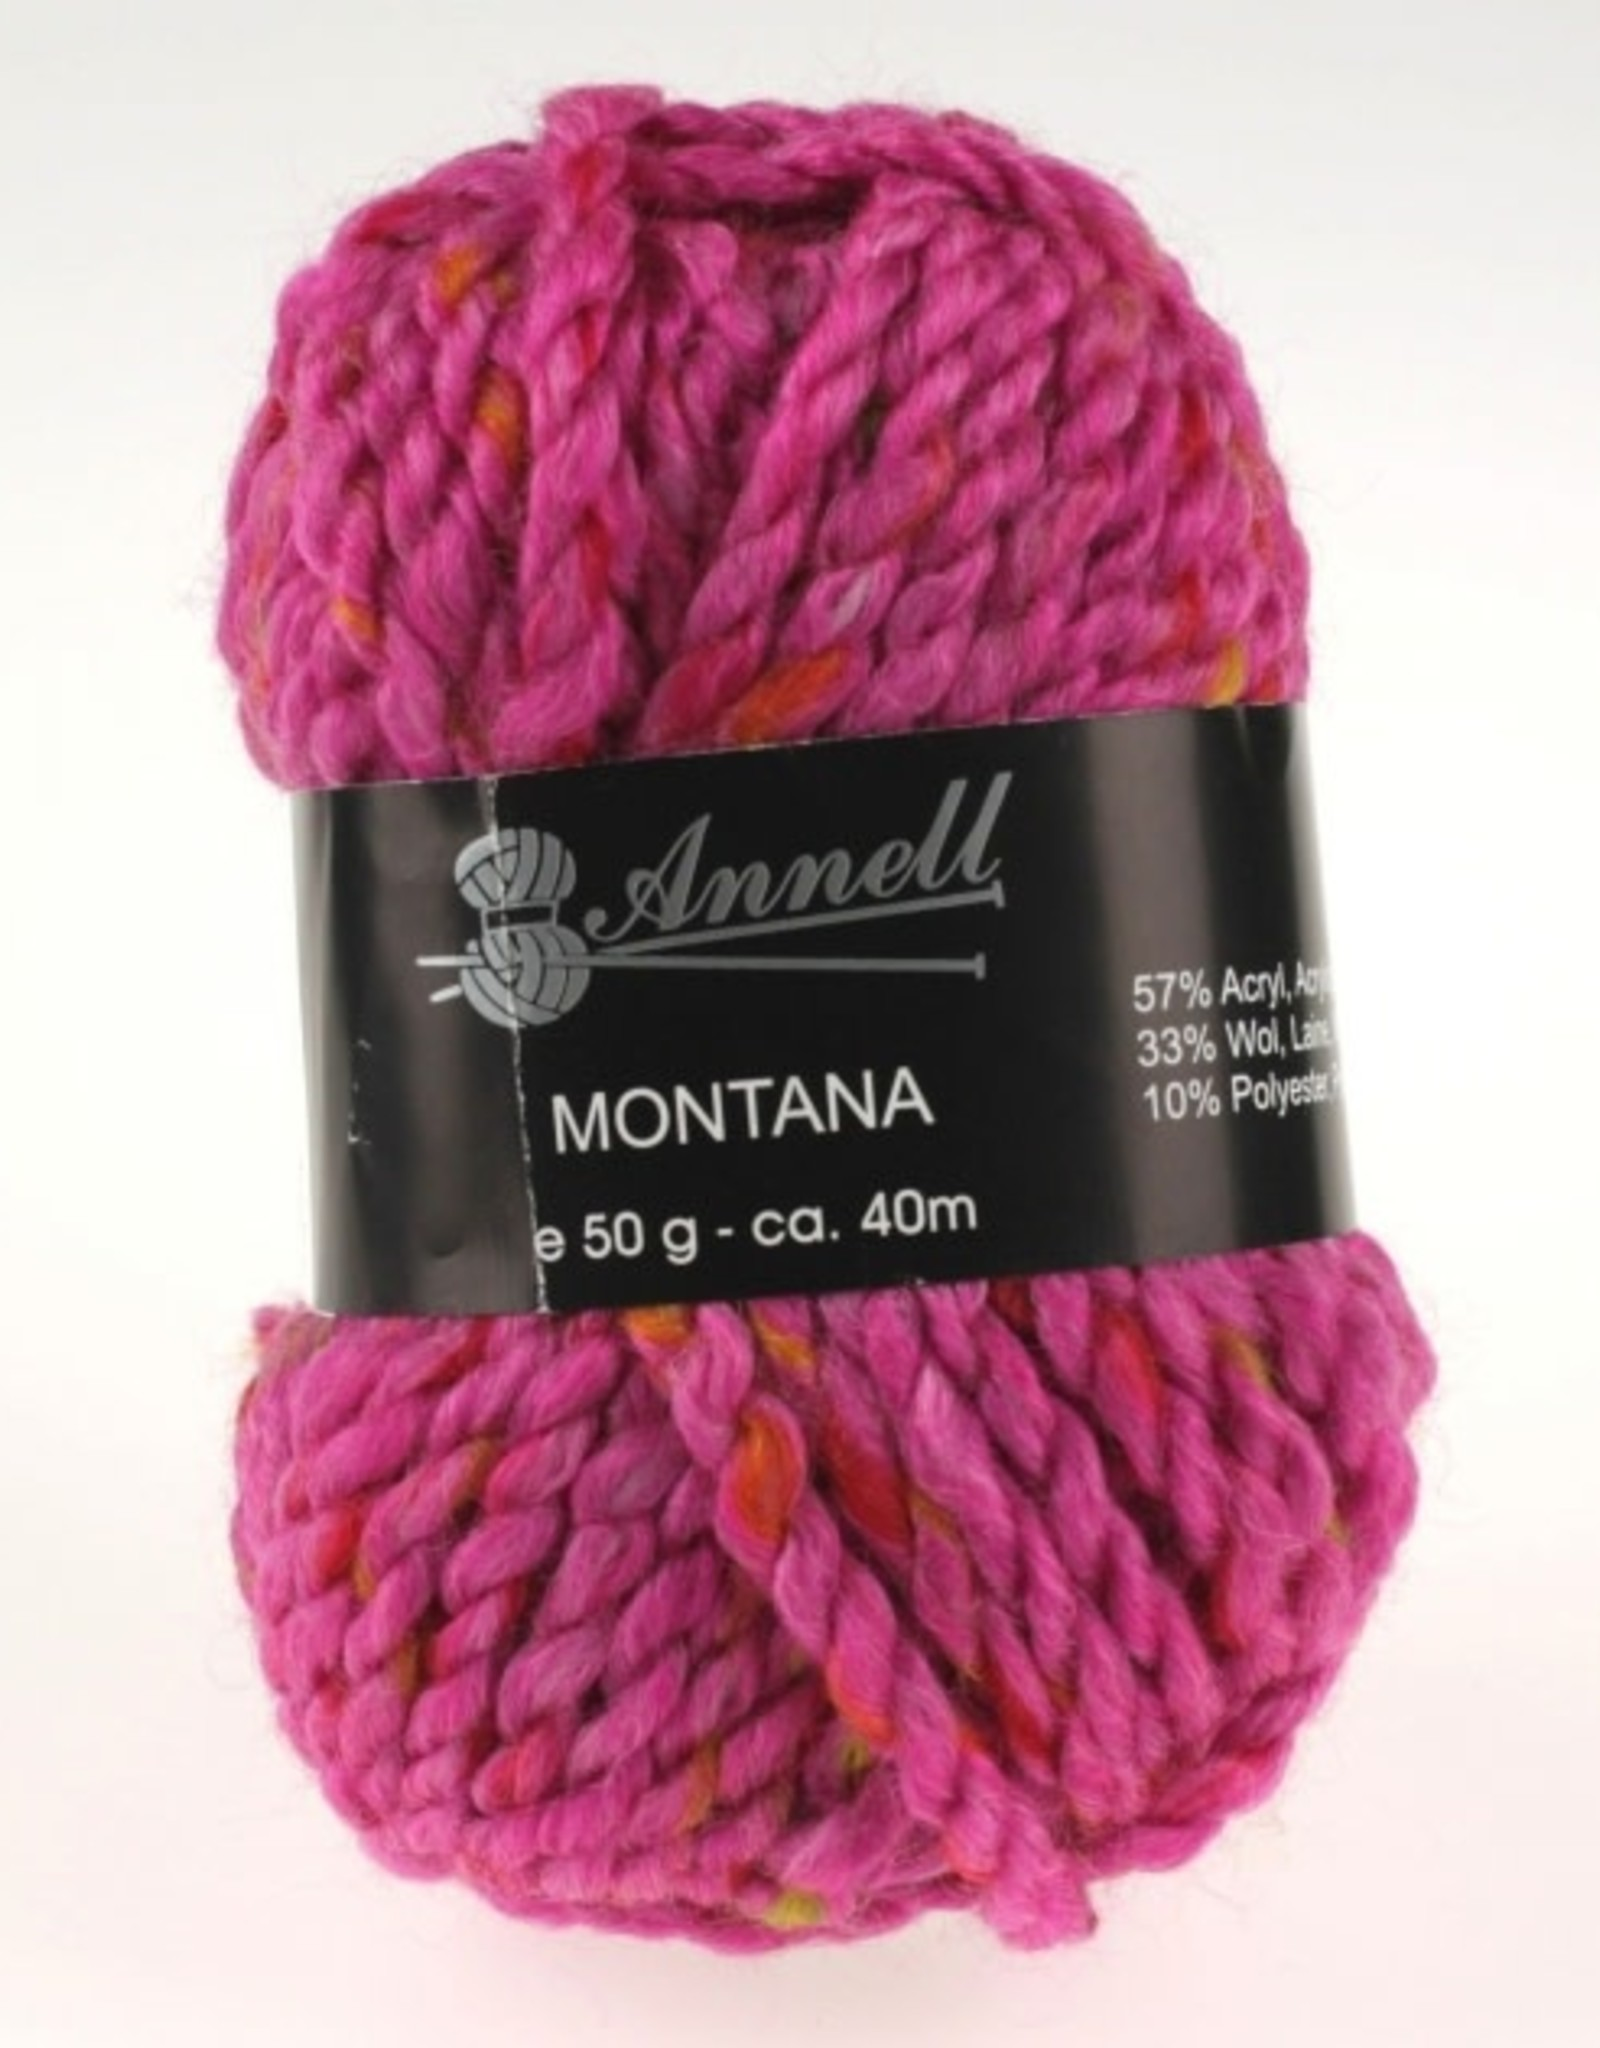 Annell Annell Montana 5677